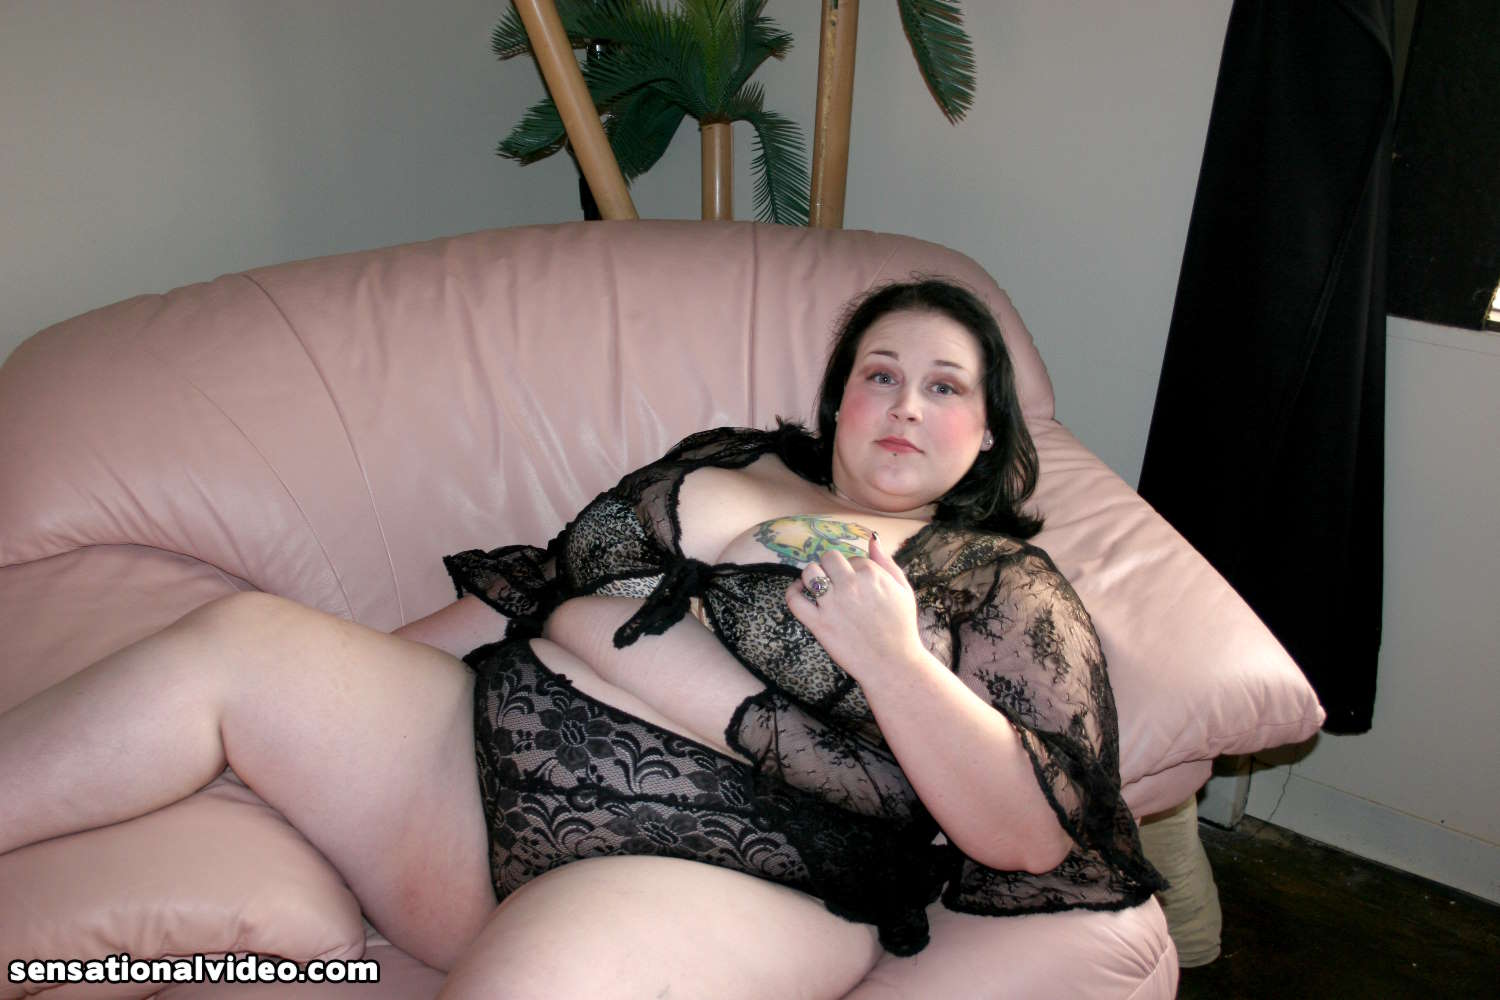 Beauty milf fuck anal abuse movies